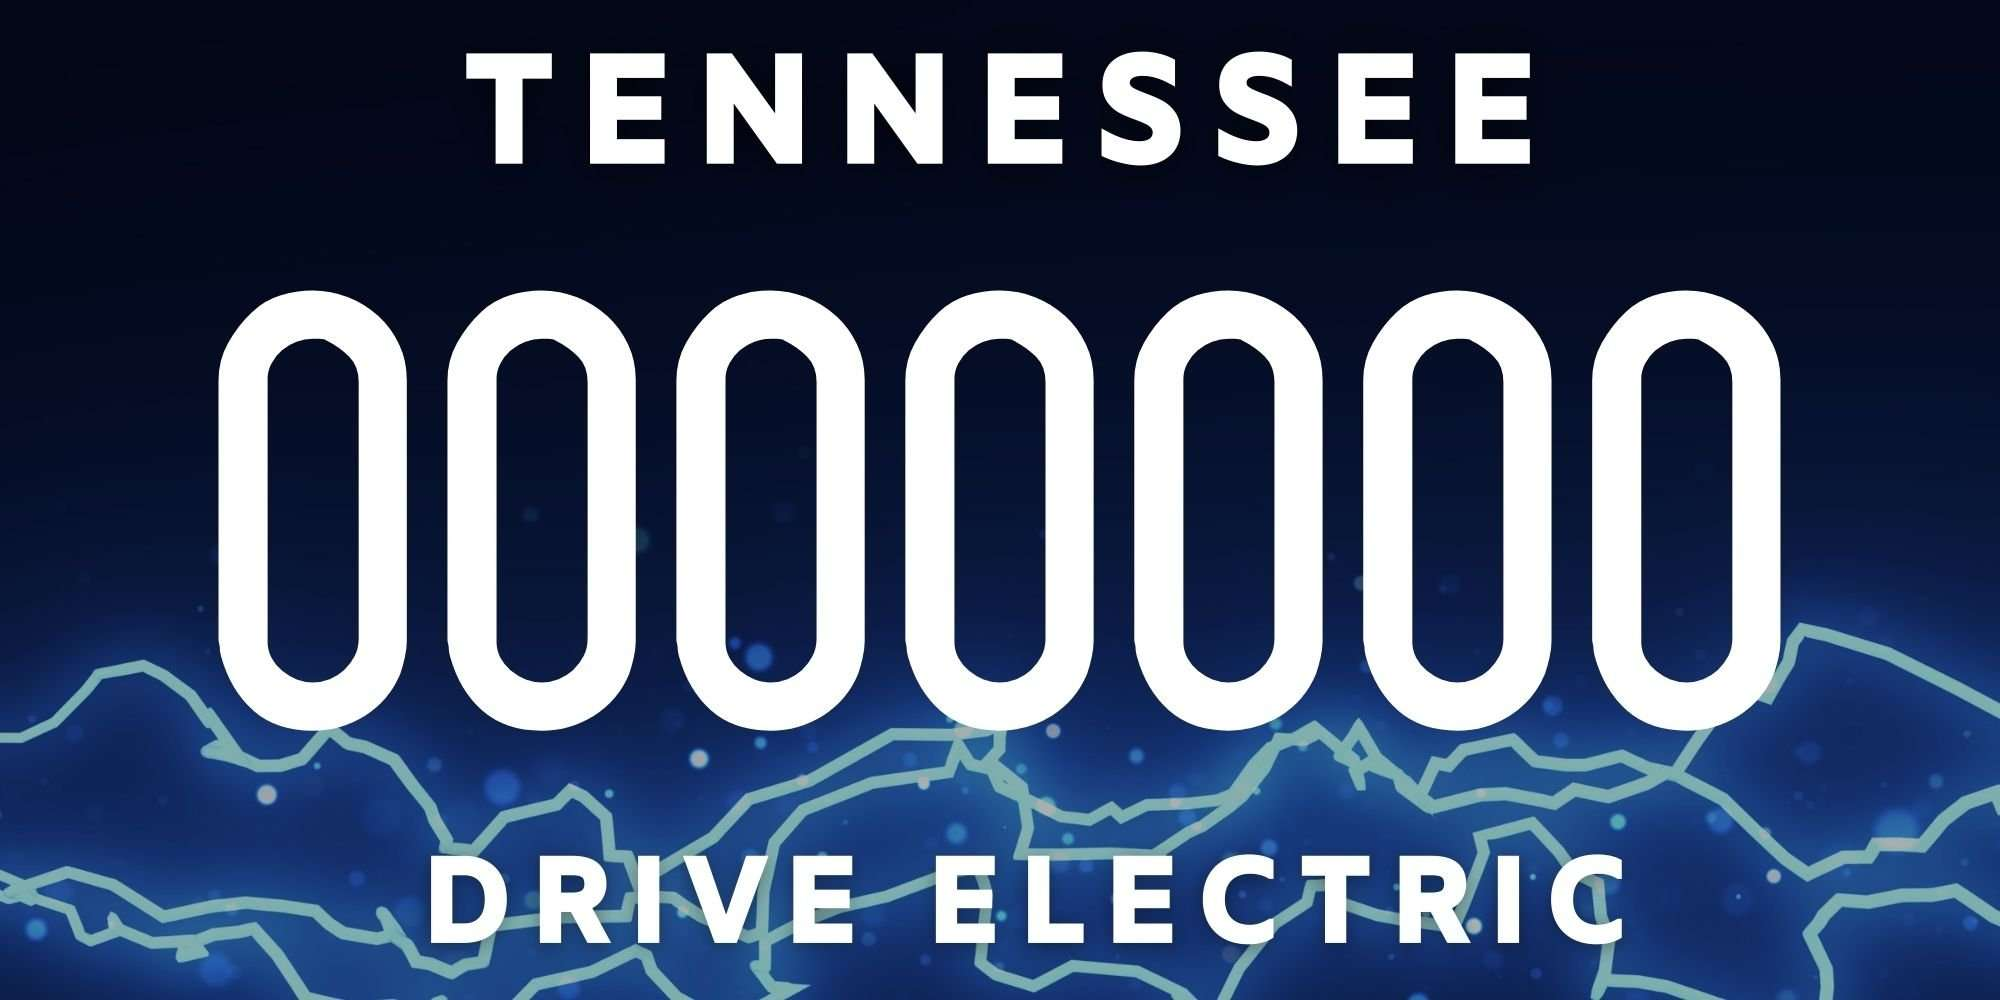 DriveElectricTN electric vehicle license plate design, navy blue at the top going into lighter blue at the bottom with blue and white electricity